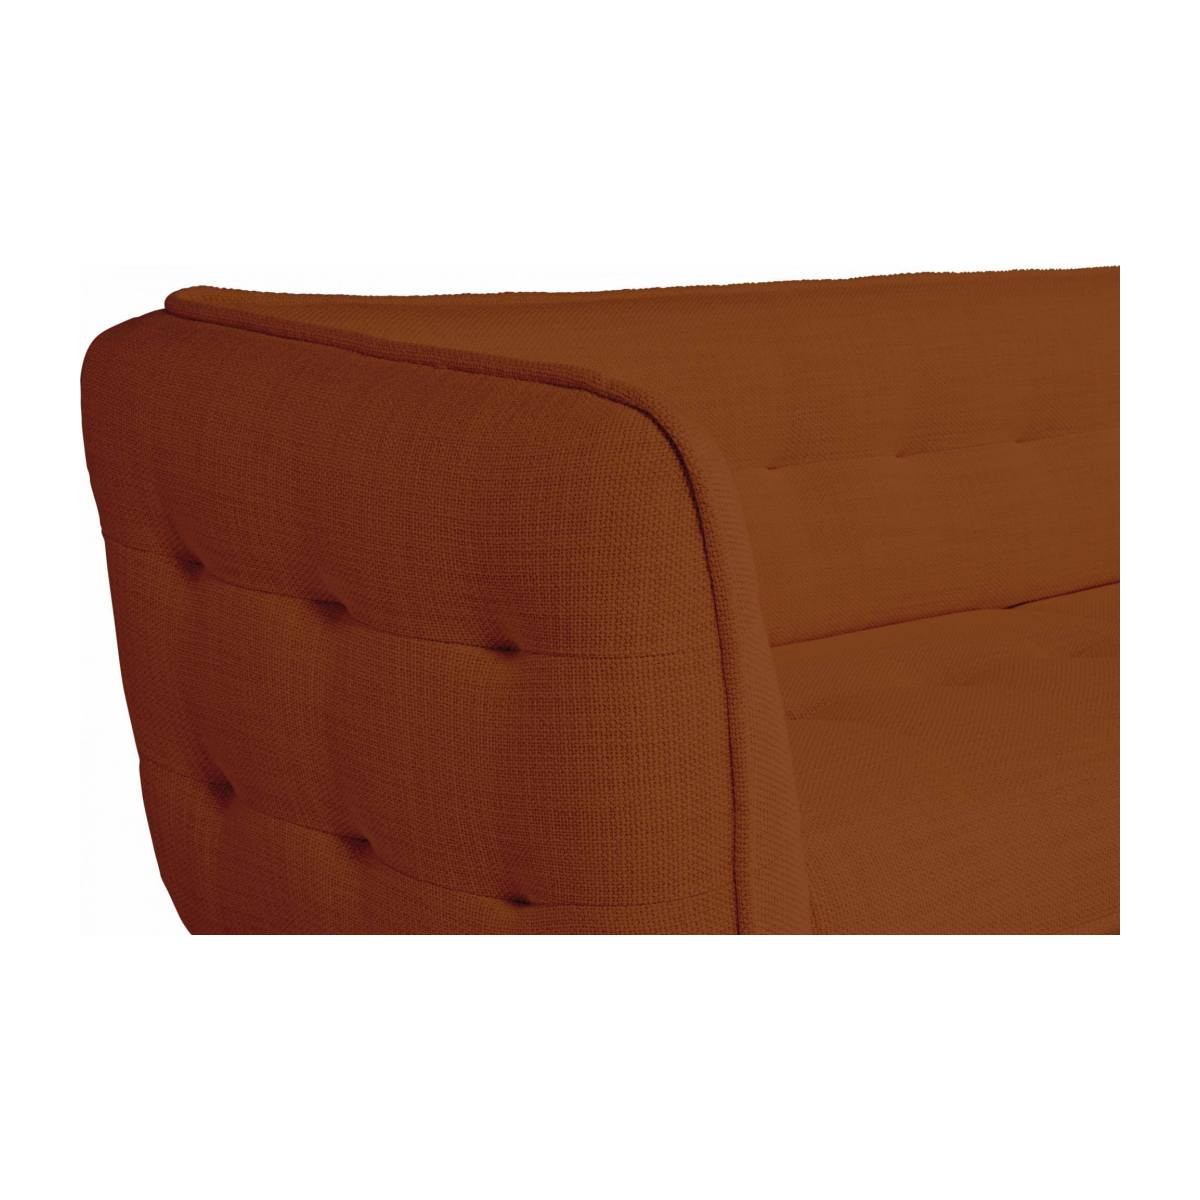 3 seater sofa in Fasoli fabric, warm red rock and dark legs n°5